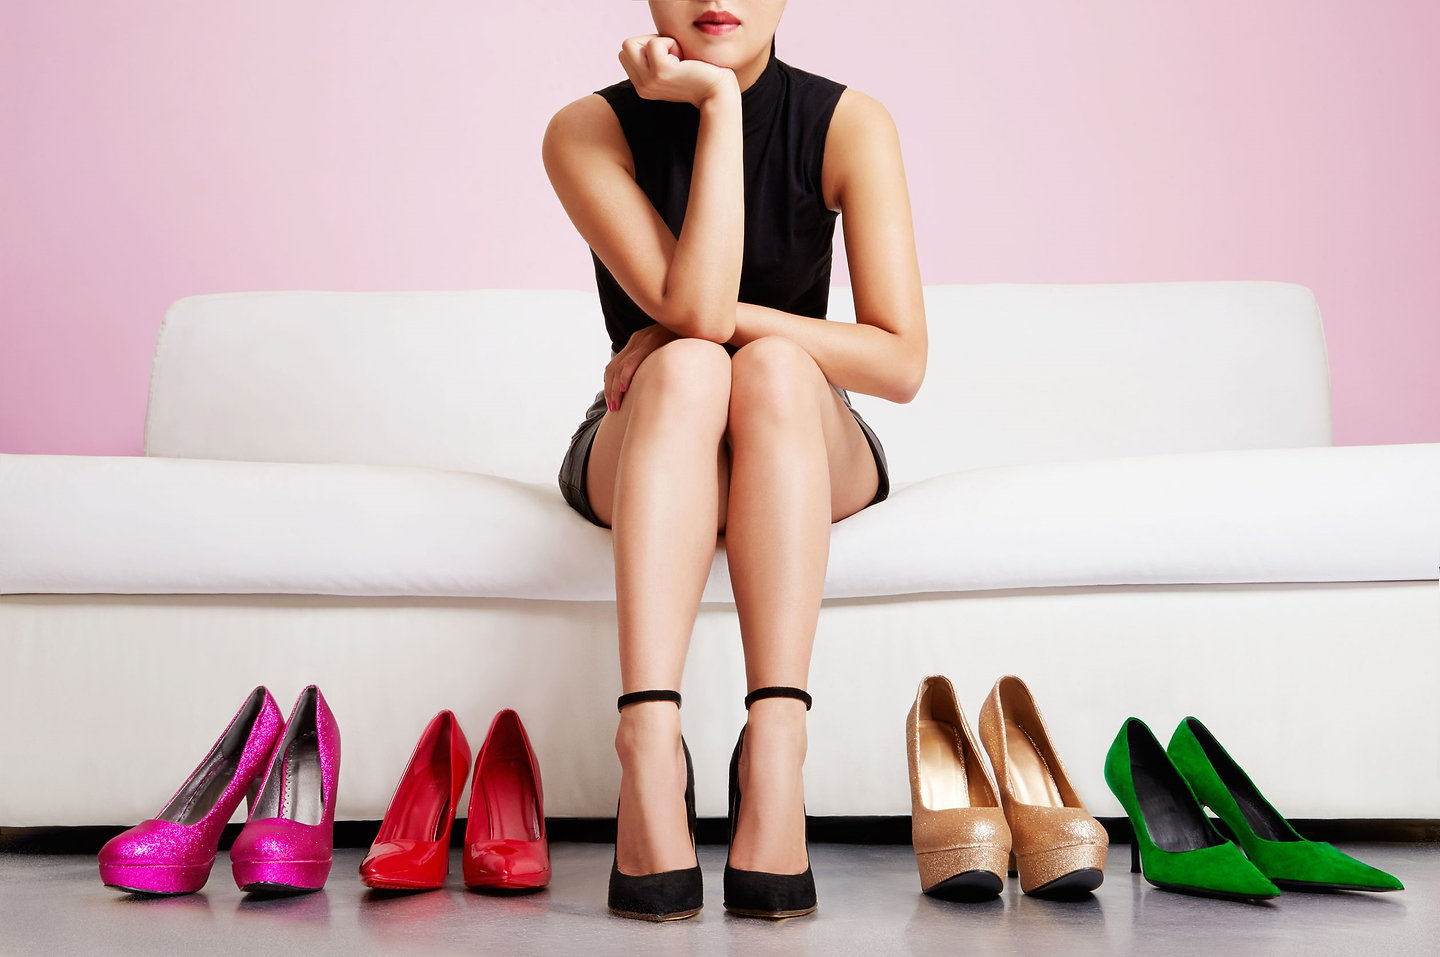 52756087_WOMEN_ON_COUCH_SHOES_SHOT_BOX.j